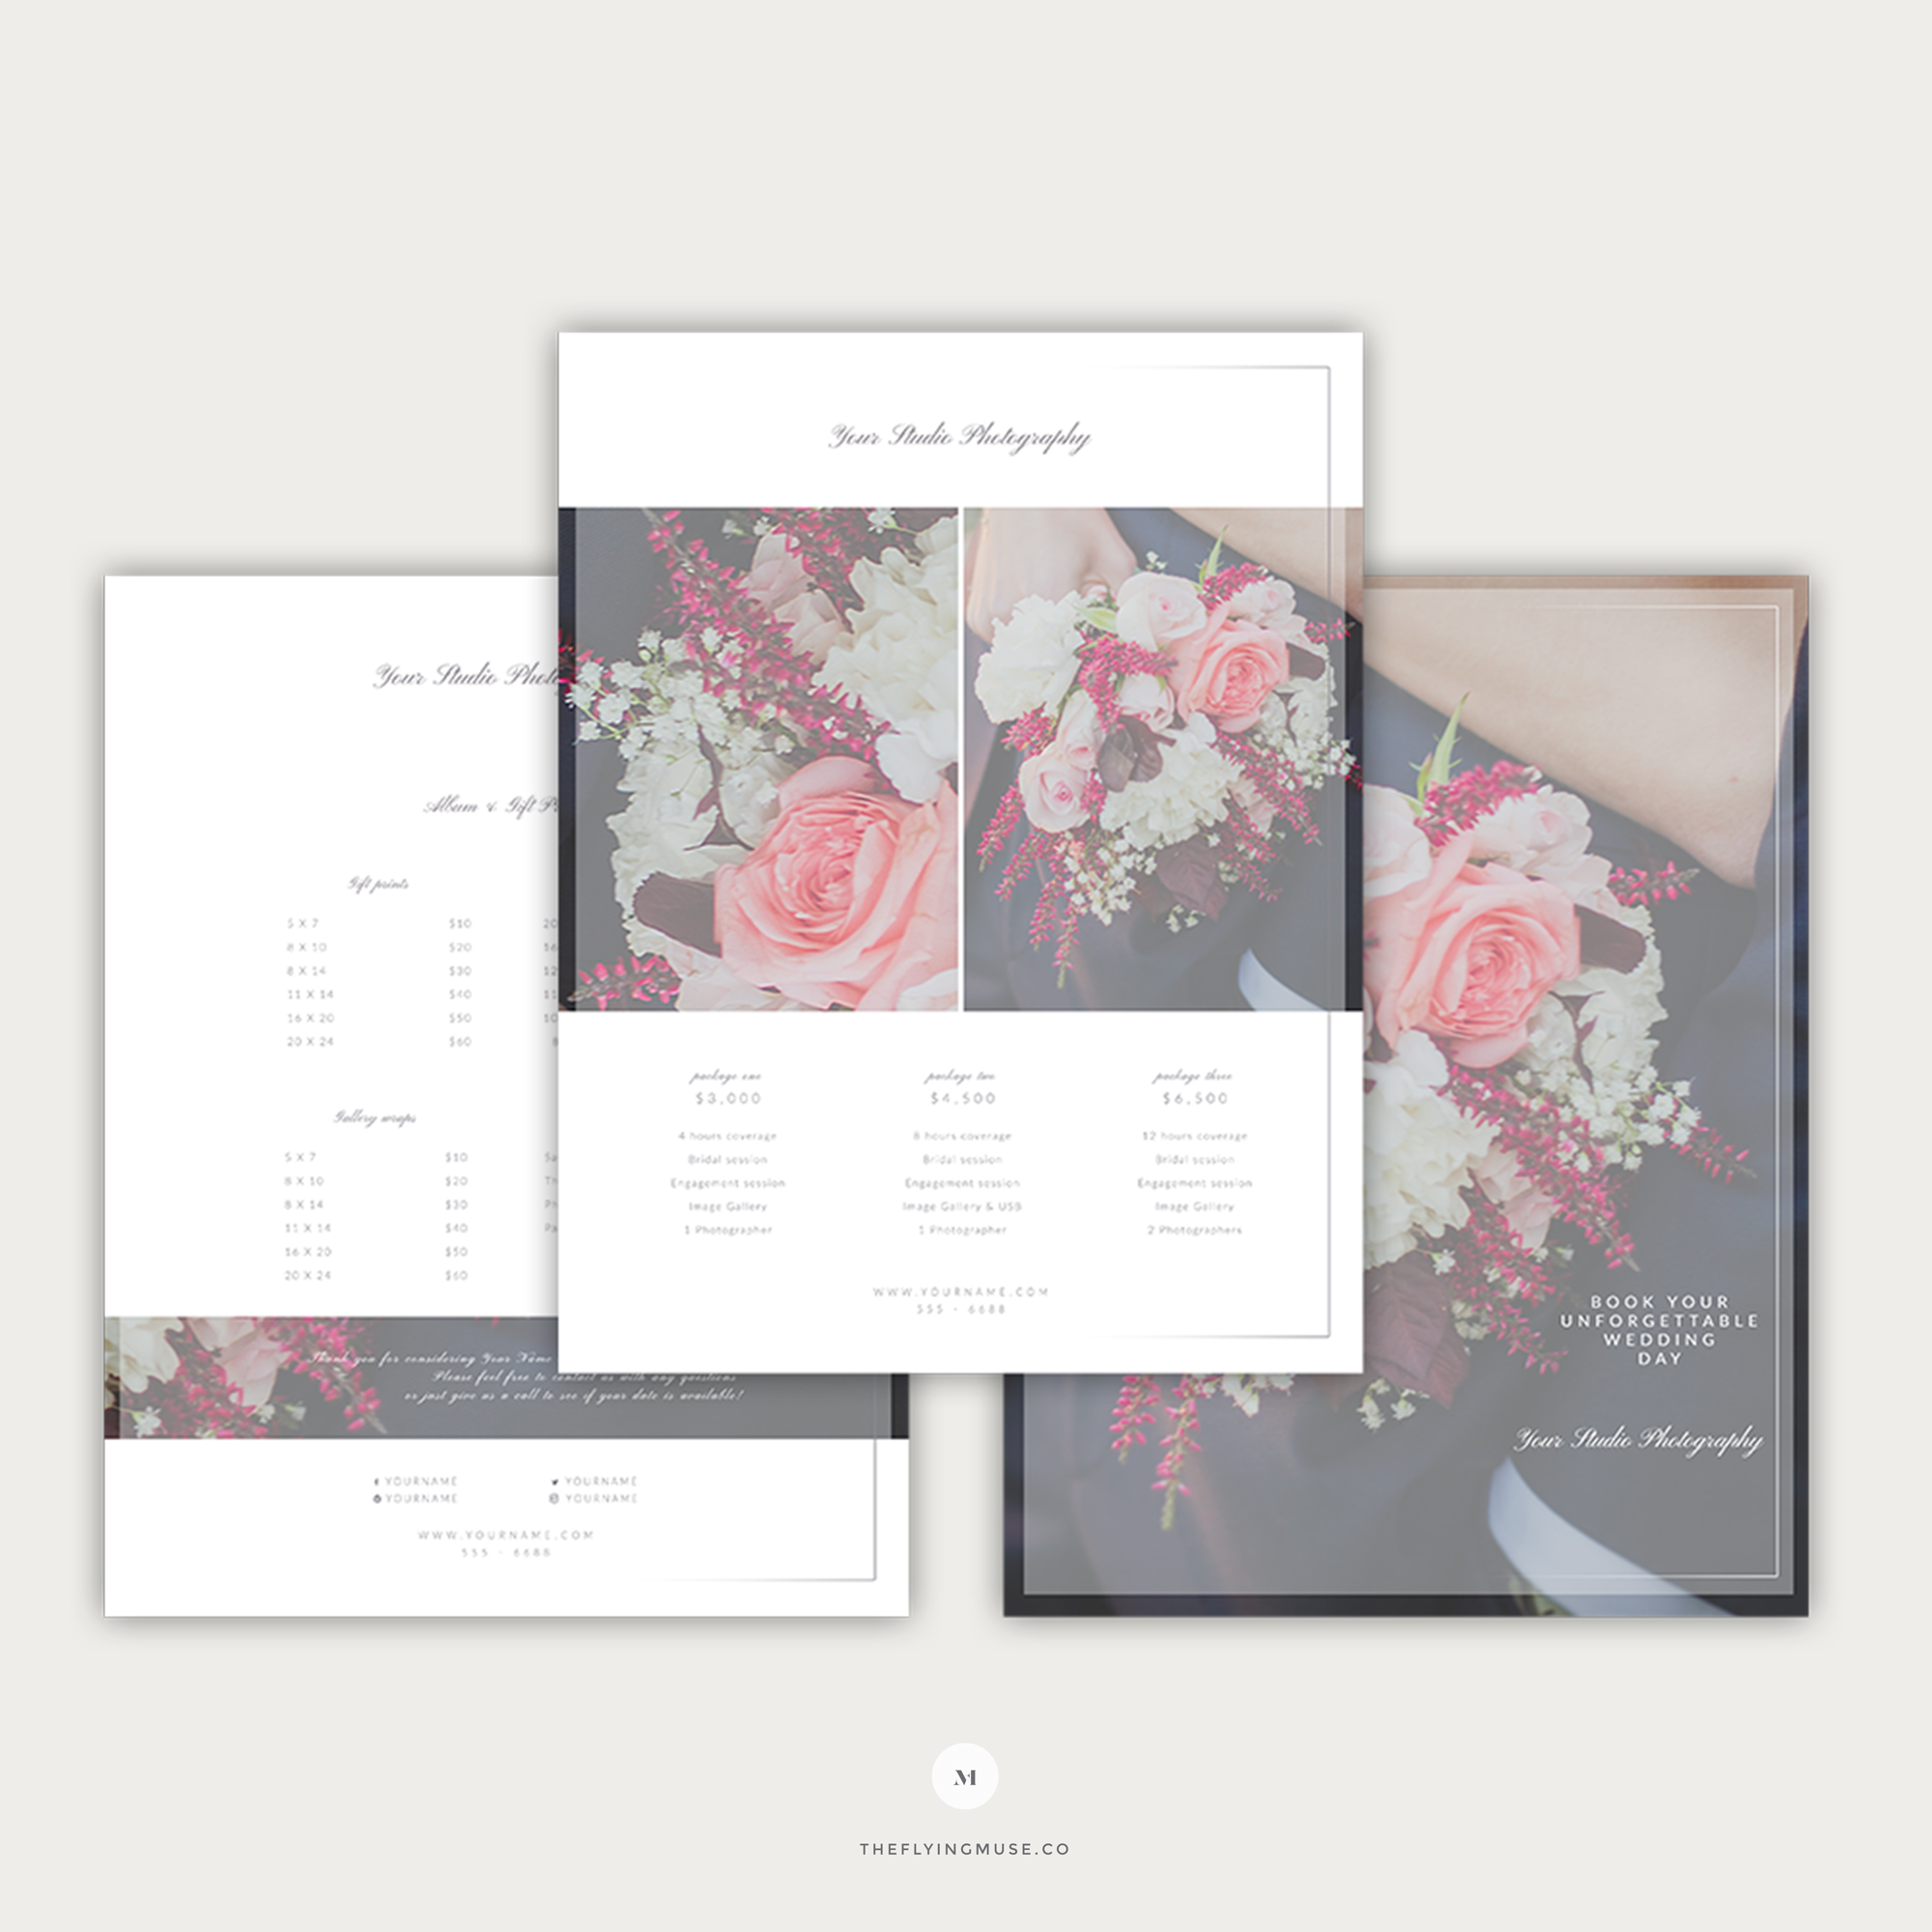 Pricing Guide Template Design For Wedding Photographers